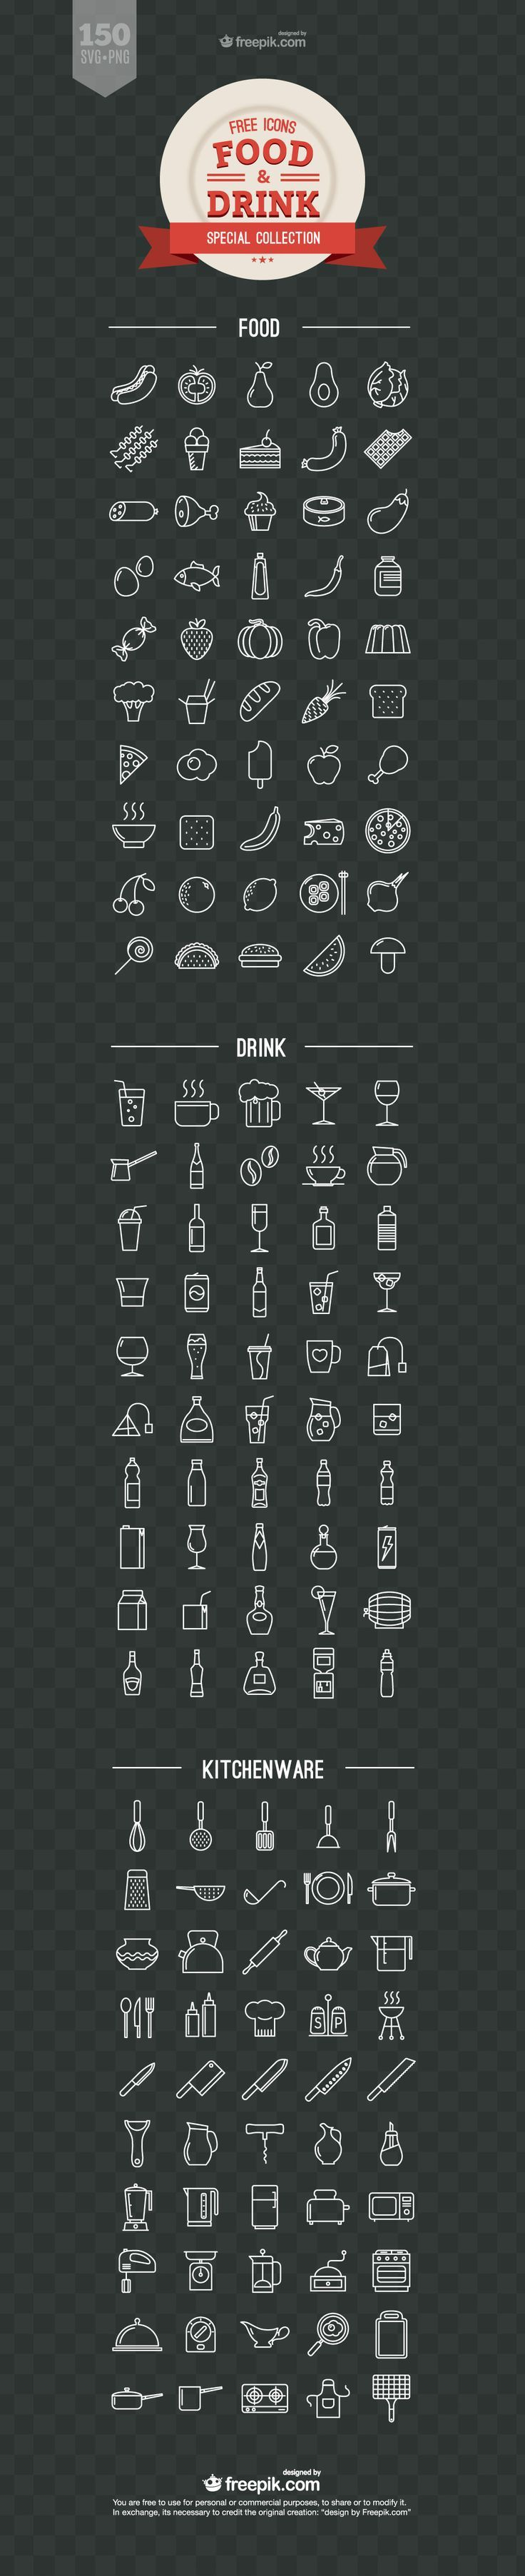 Food and Drink Free Vector Icons: